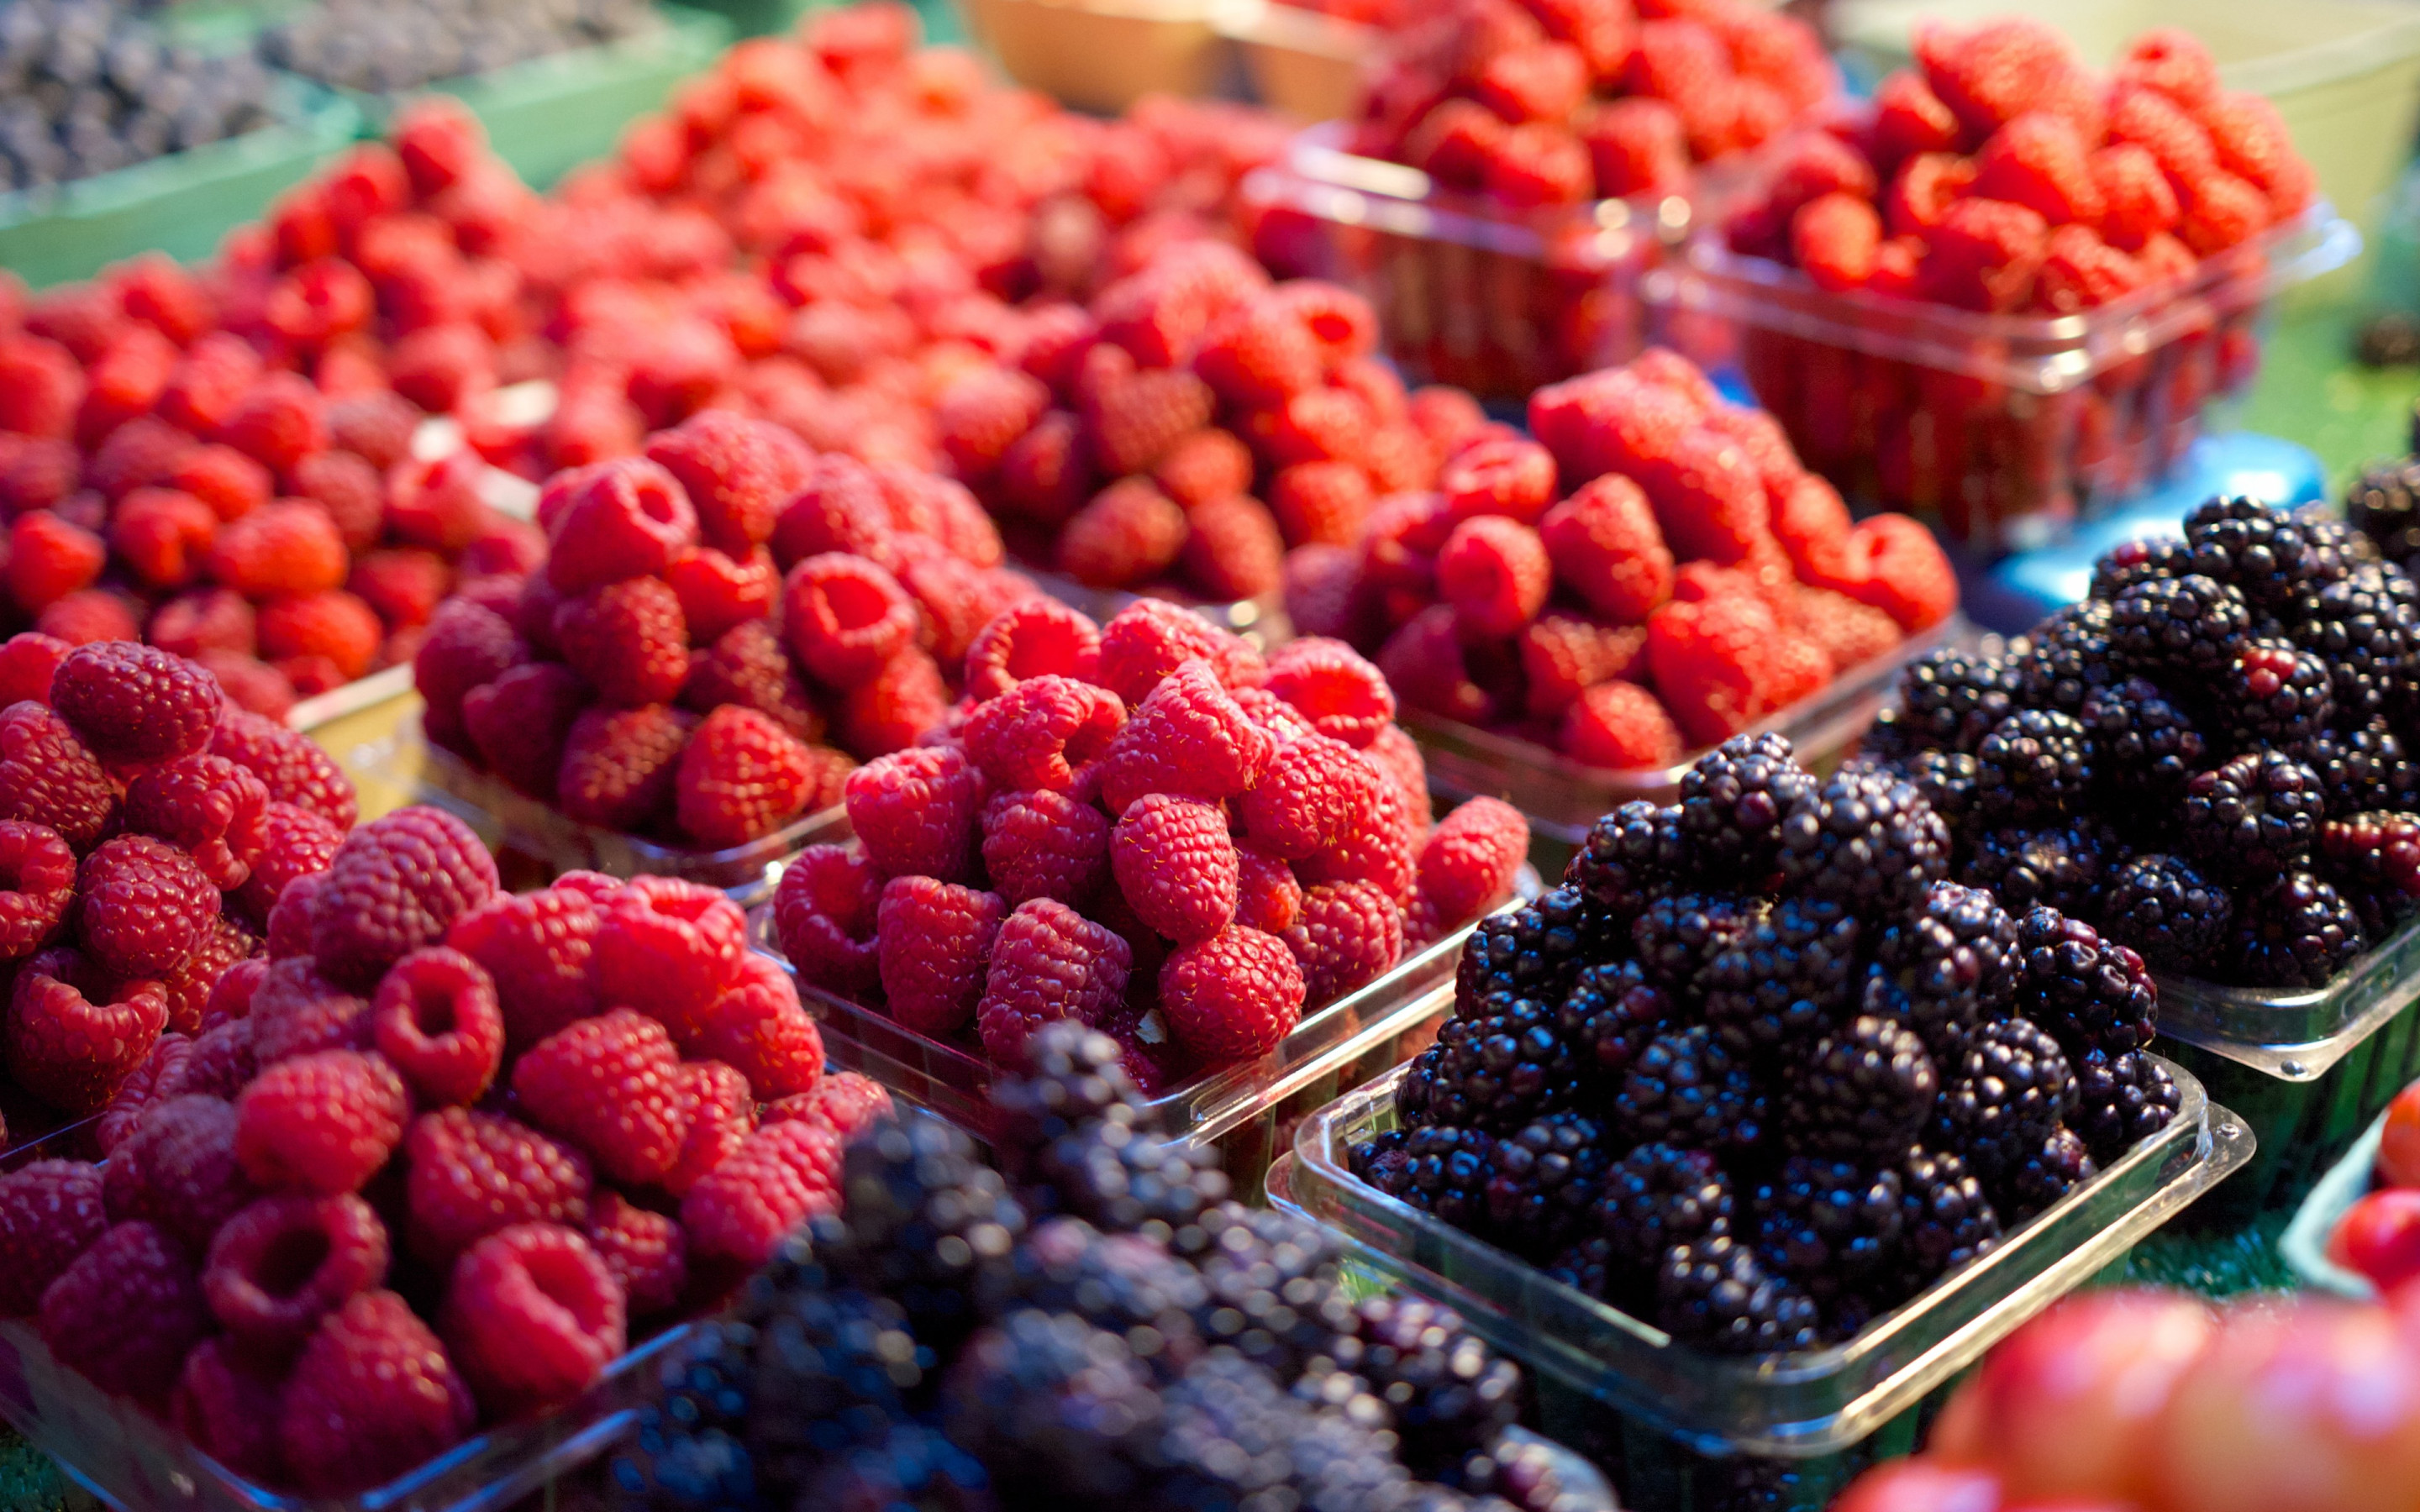 Fresh fruits at market | 2880x1800 wallpaper